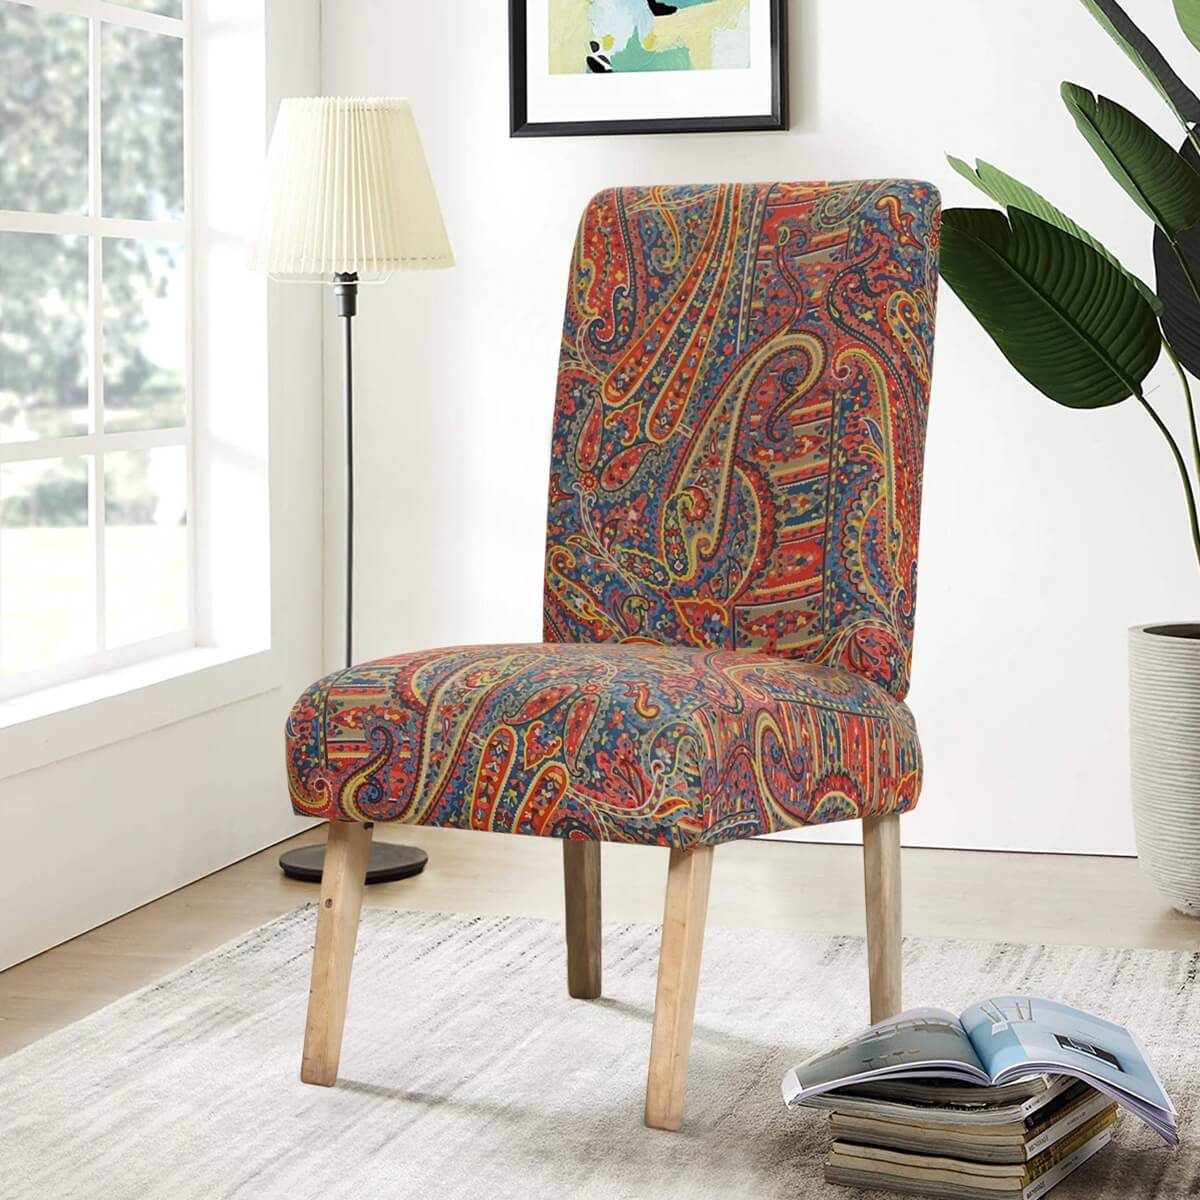 Edmonton Rustic Solid Wood Accent chair with Paisley Print Upholstery